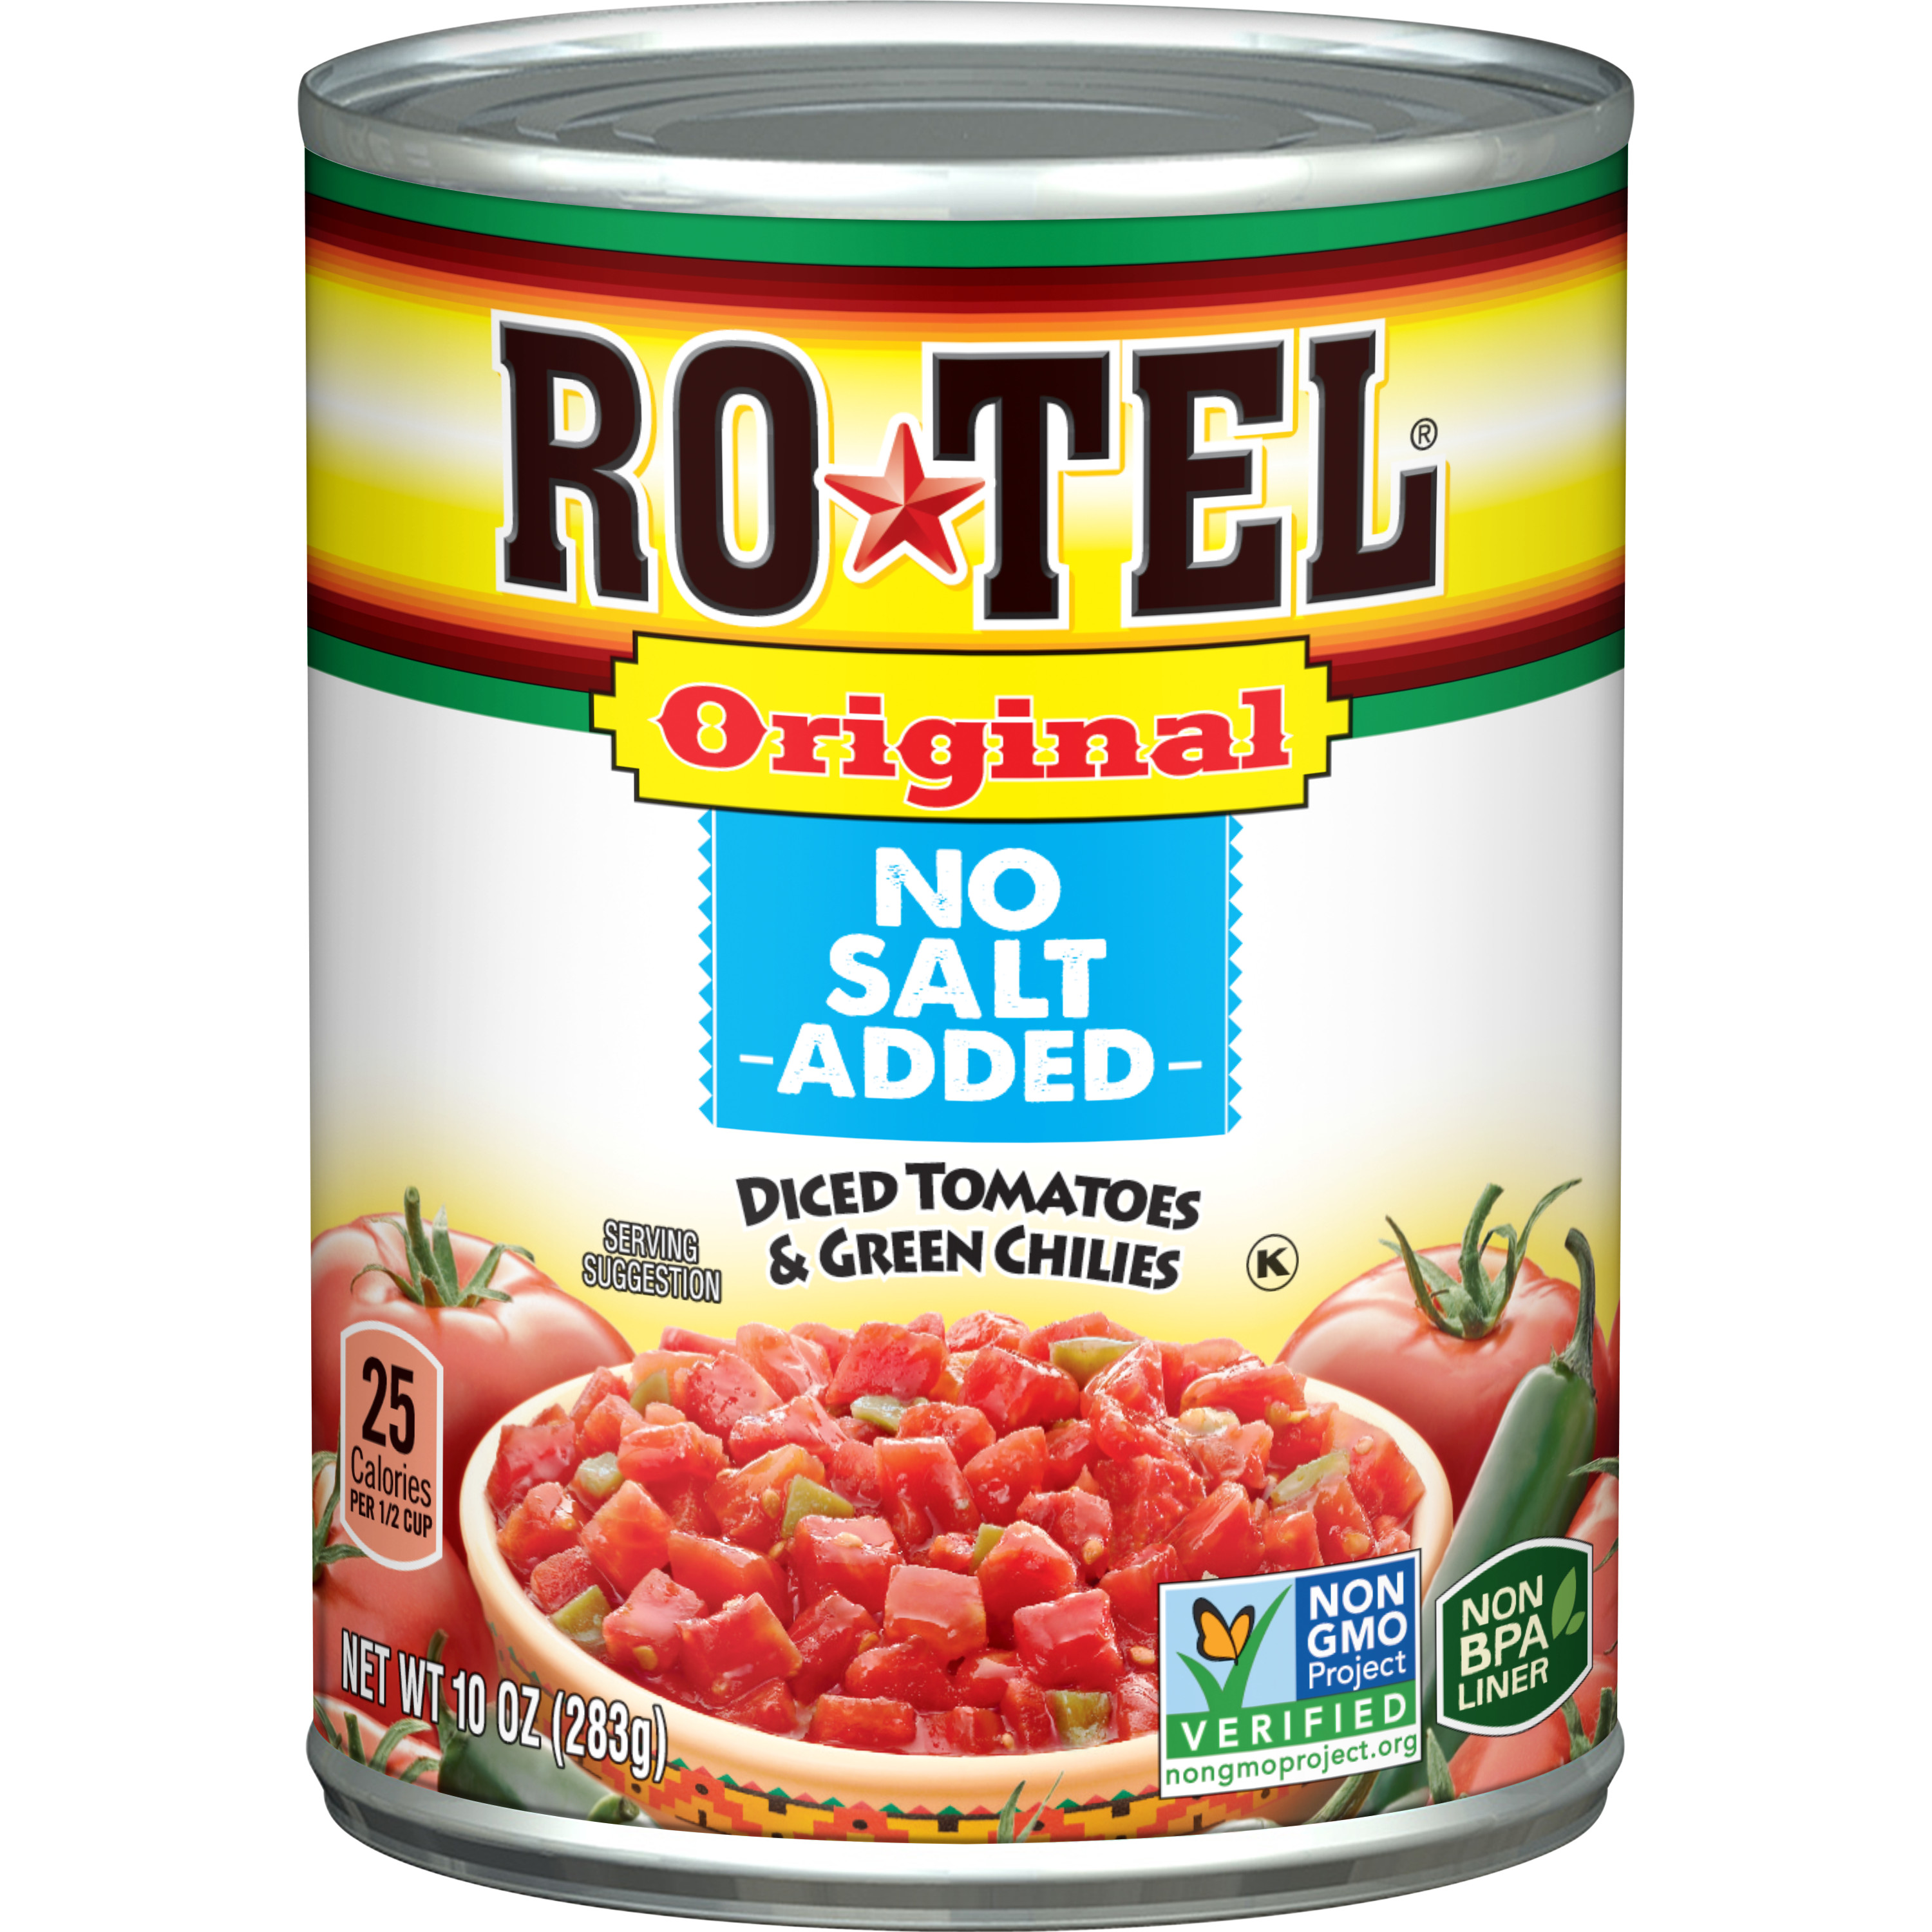 Ro*Tel Original No Salt Added Diced Tomatoes & Green Chilies, 10 Oz